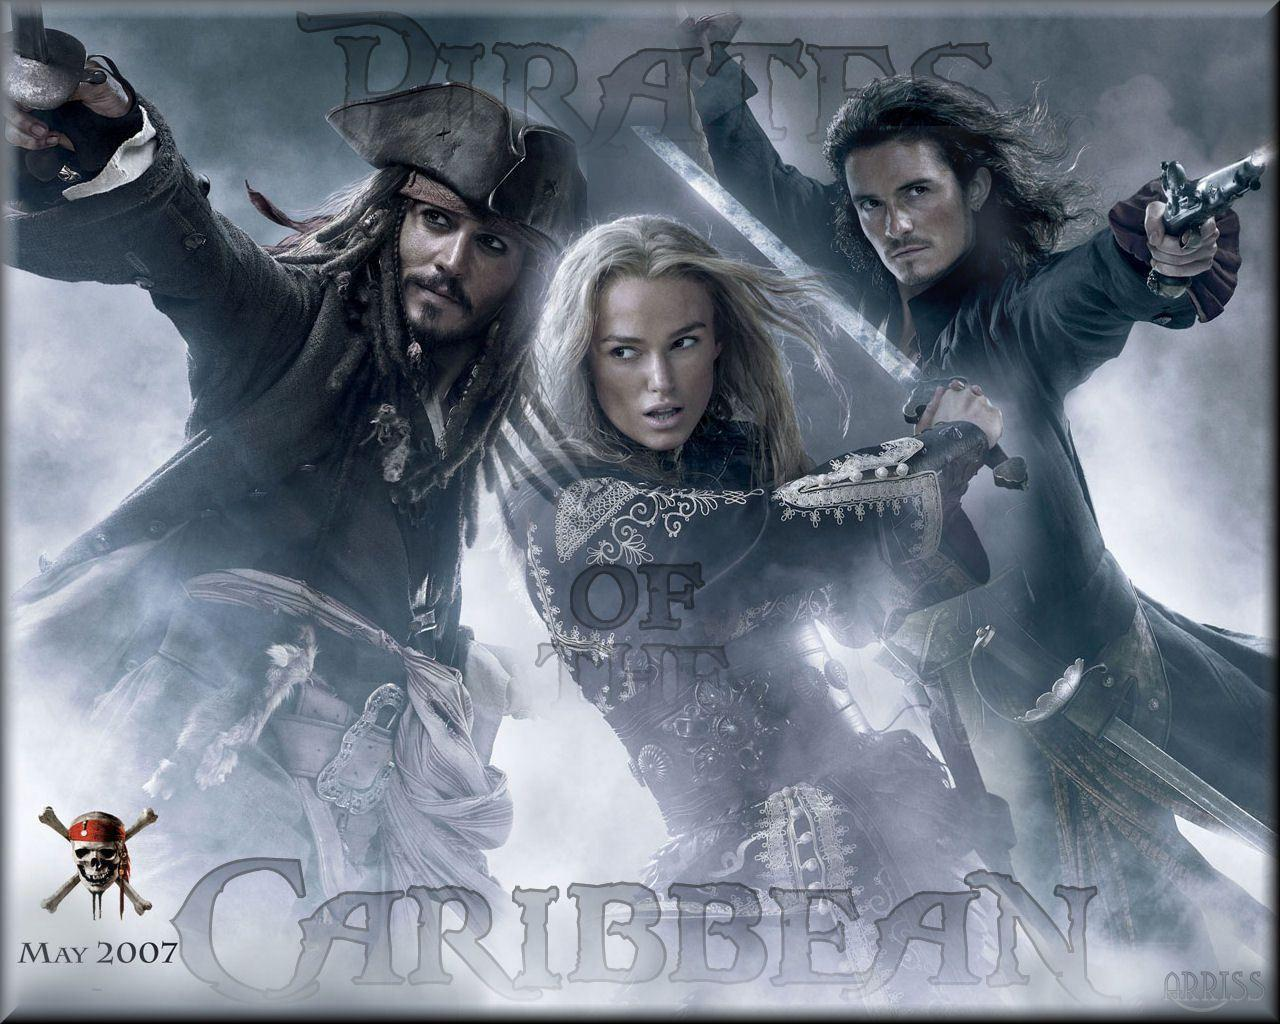 Captain Jack Sparrow - Captain Jack Sparrow Wallpaper (16949729 ...